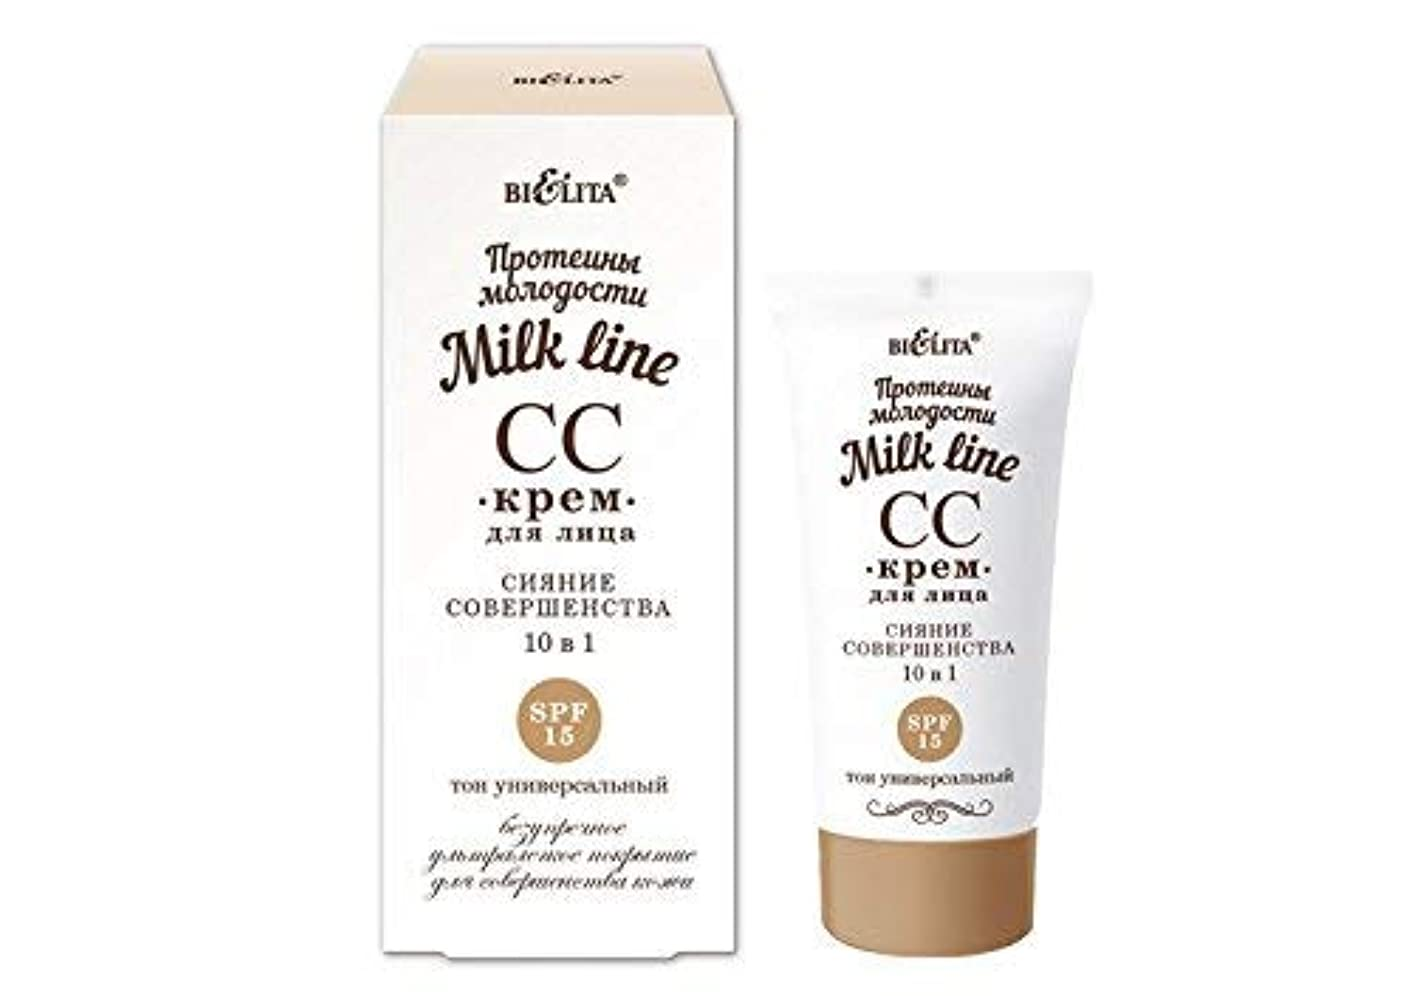 前件ディプロマスタジオCC Cream,based on goat's milk Total Effects Tone Correcting Moisturizer with Sunscreen, Light to Medium 10 effects...